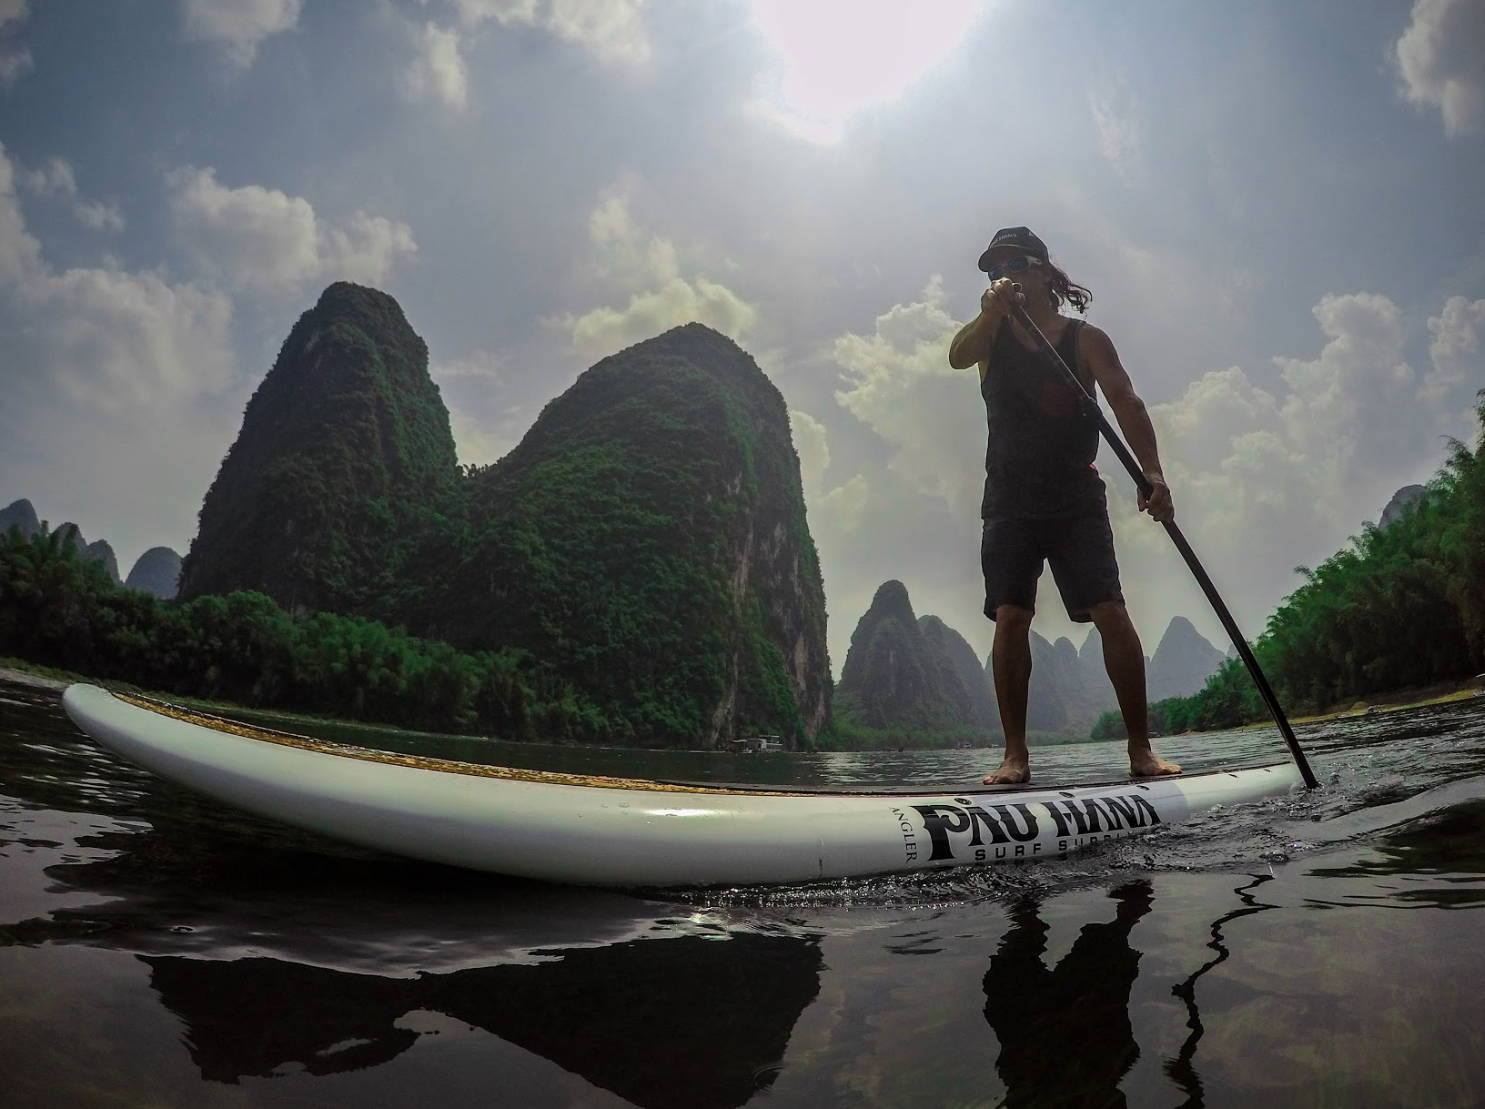 Todd on his angler sup on the river in china